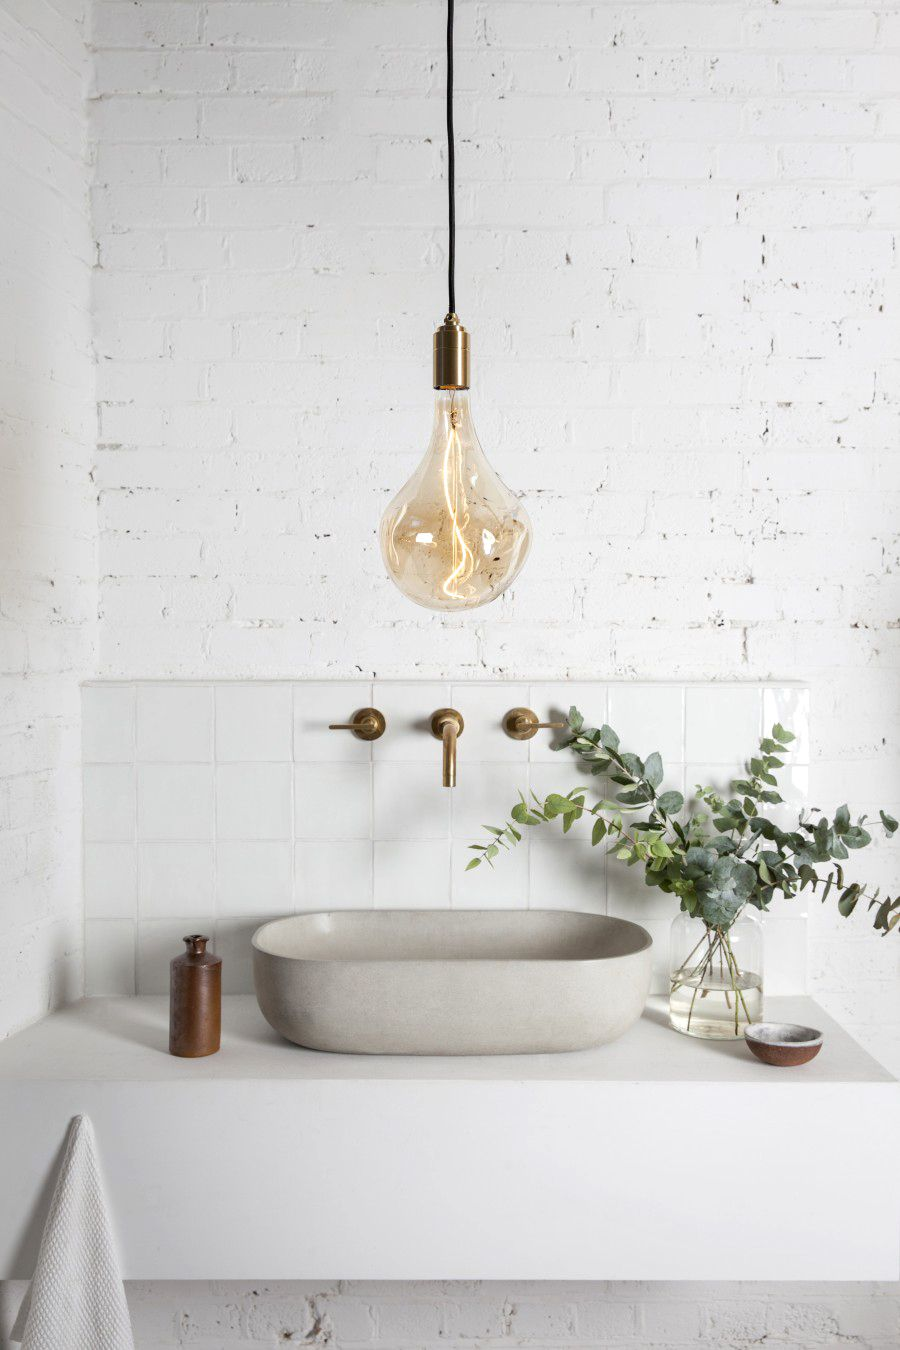 Pin by Stefanie Mcghee on Bathrooms | Pinterest | Industrial, Design ...